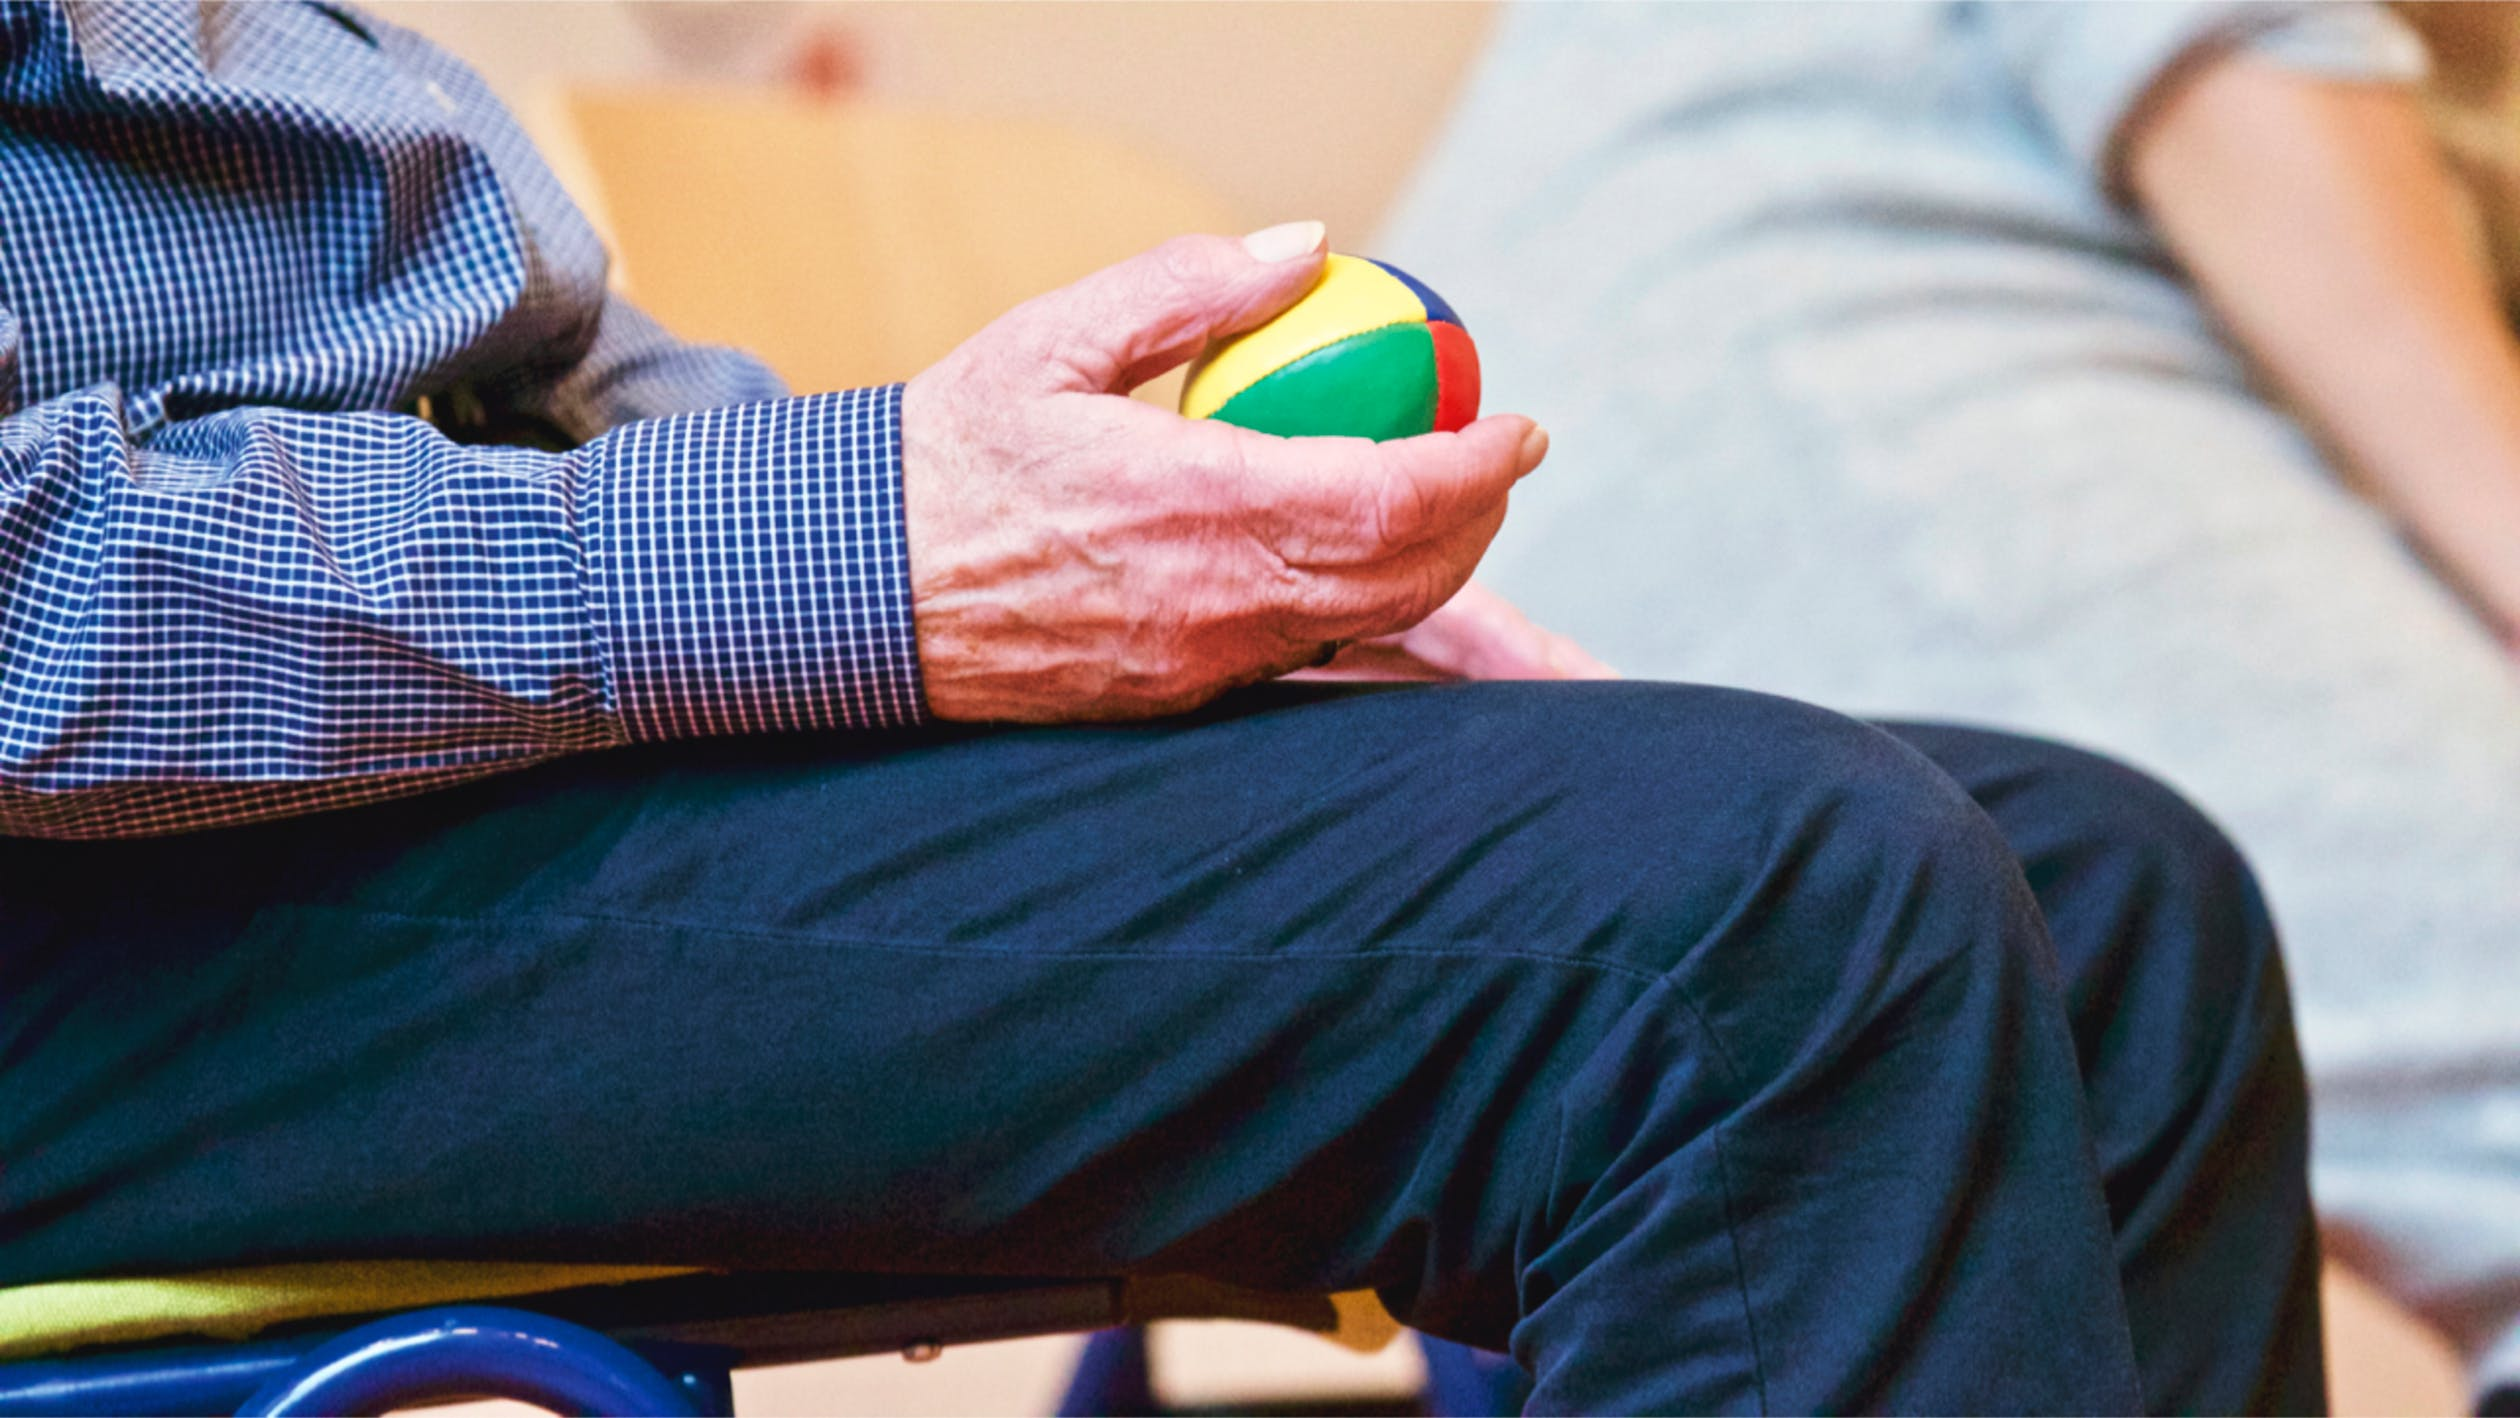 5 Pain Relief Tips for Patients Dealing with Arthritis